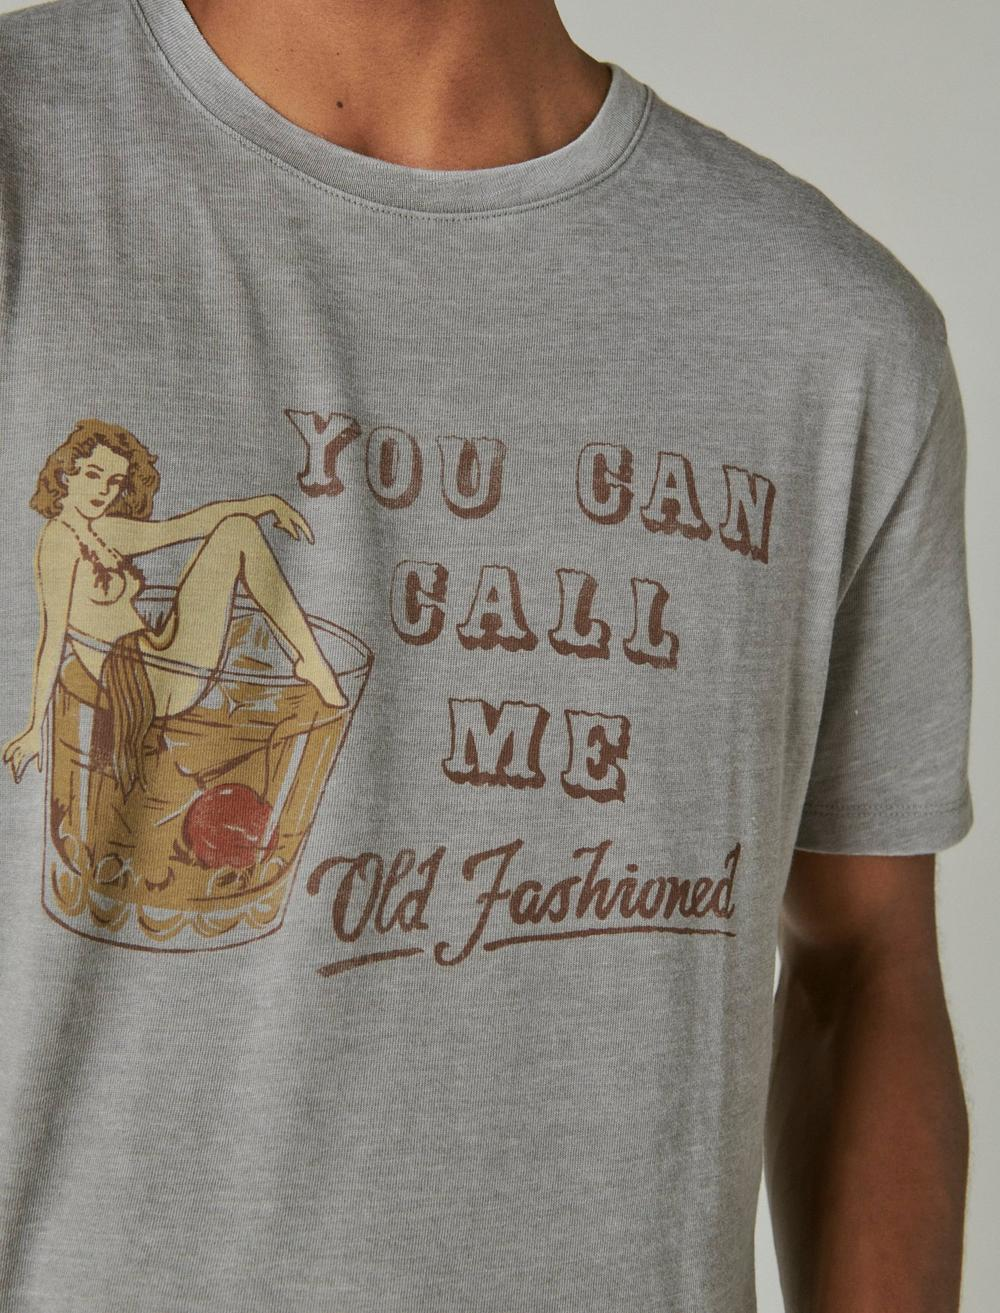 OLD FASHIONED GRAPHIC TEE, image 5